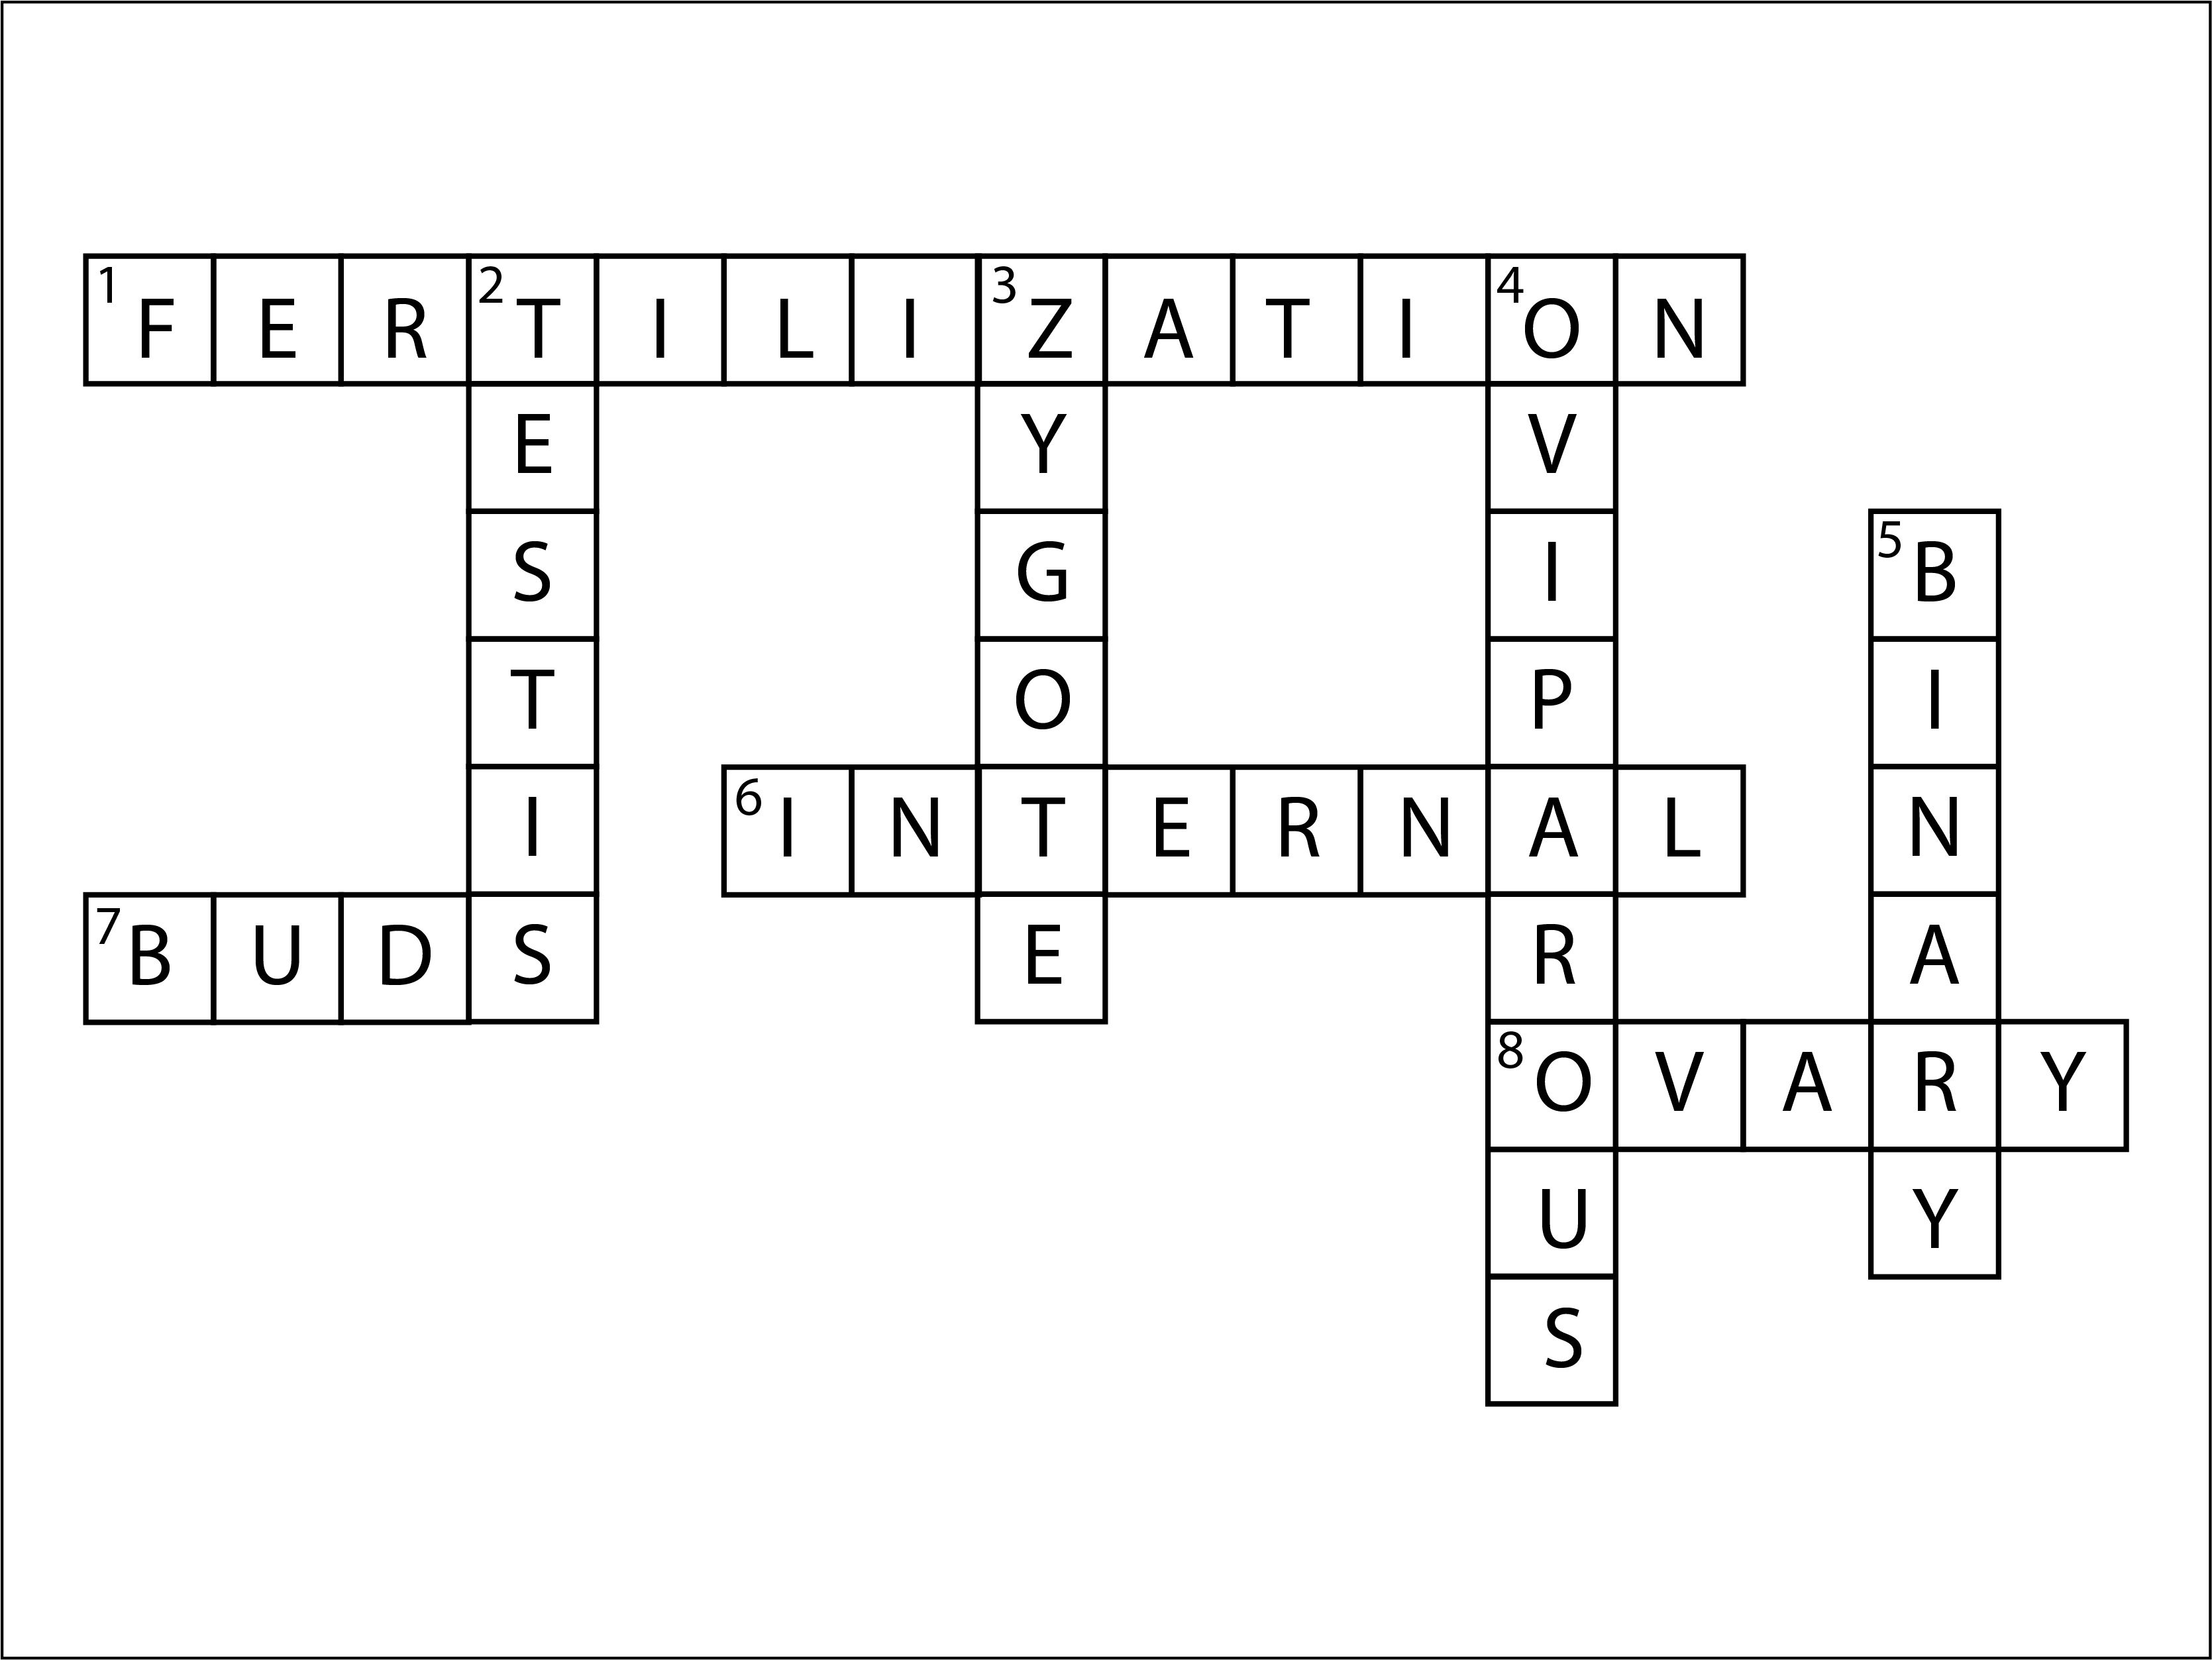 Q10 Complete the crossword puzzle using the hints given